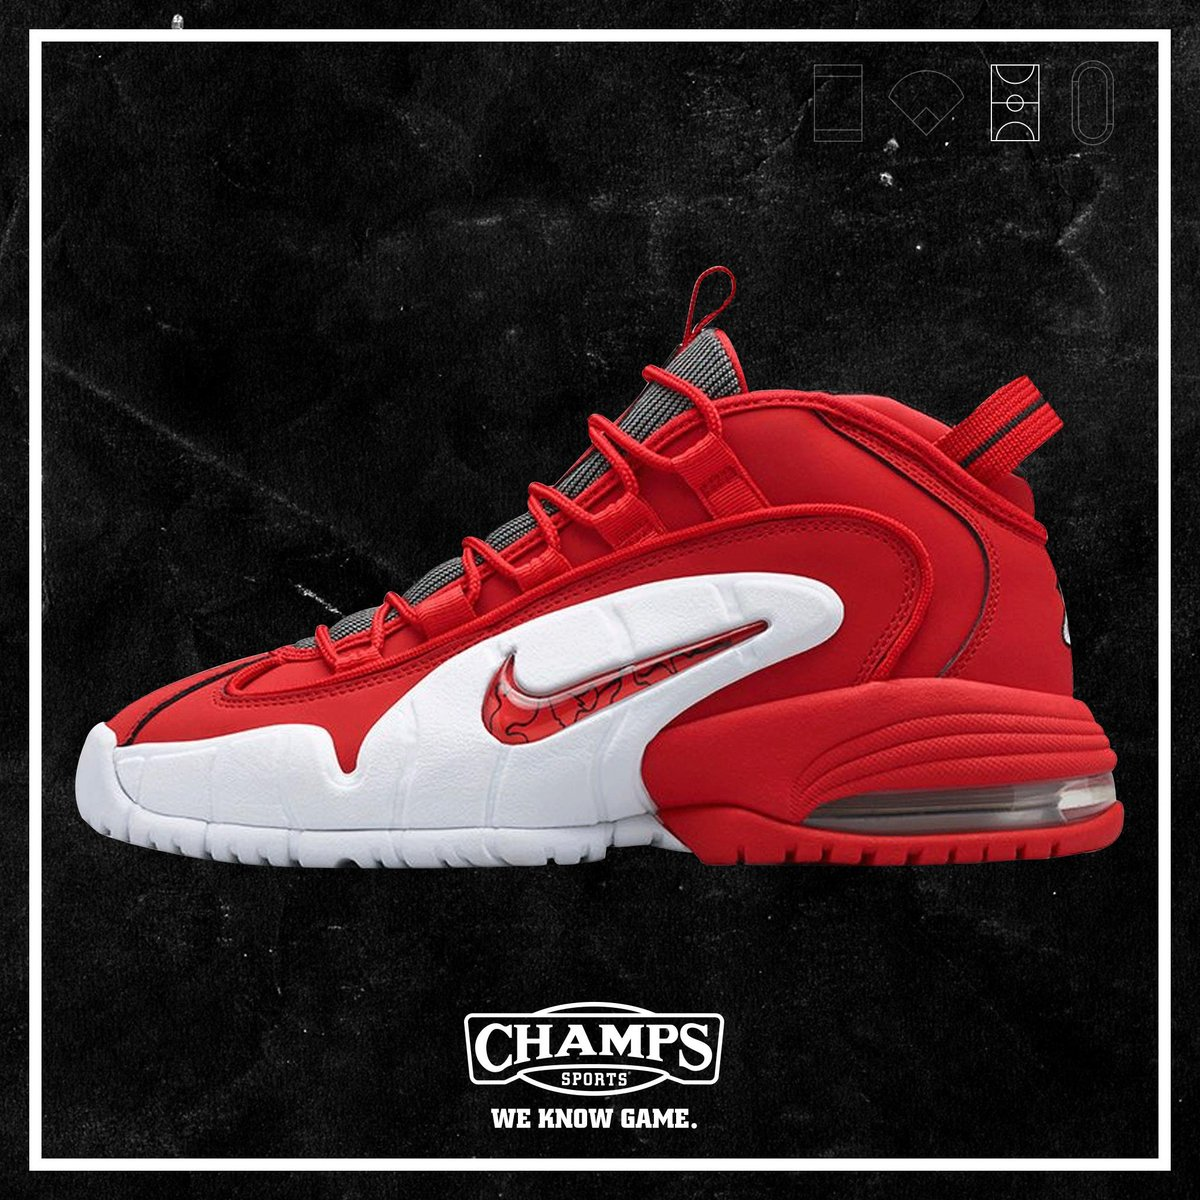 309f0a1c878  champssports 4 years. releasenews nike air max penny launches online only  tomorrow at 8 am et